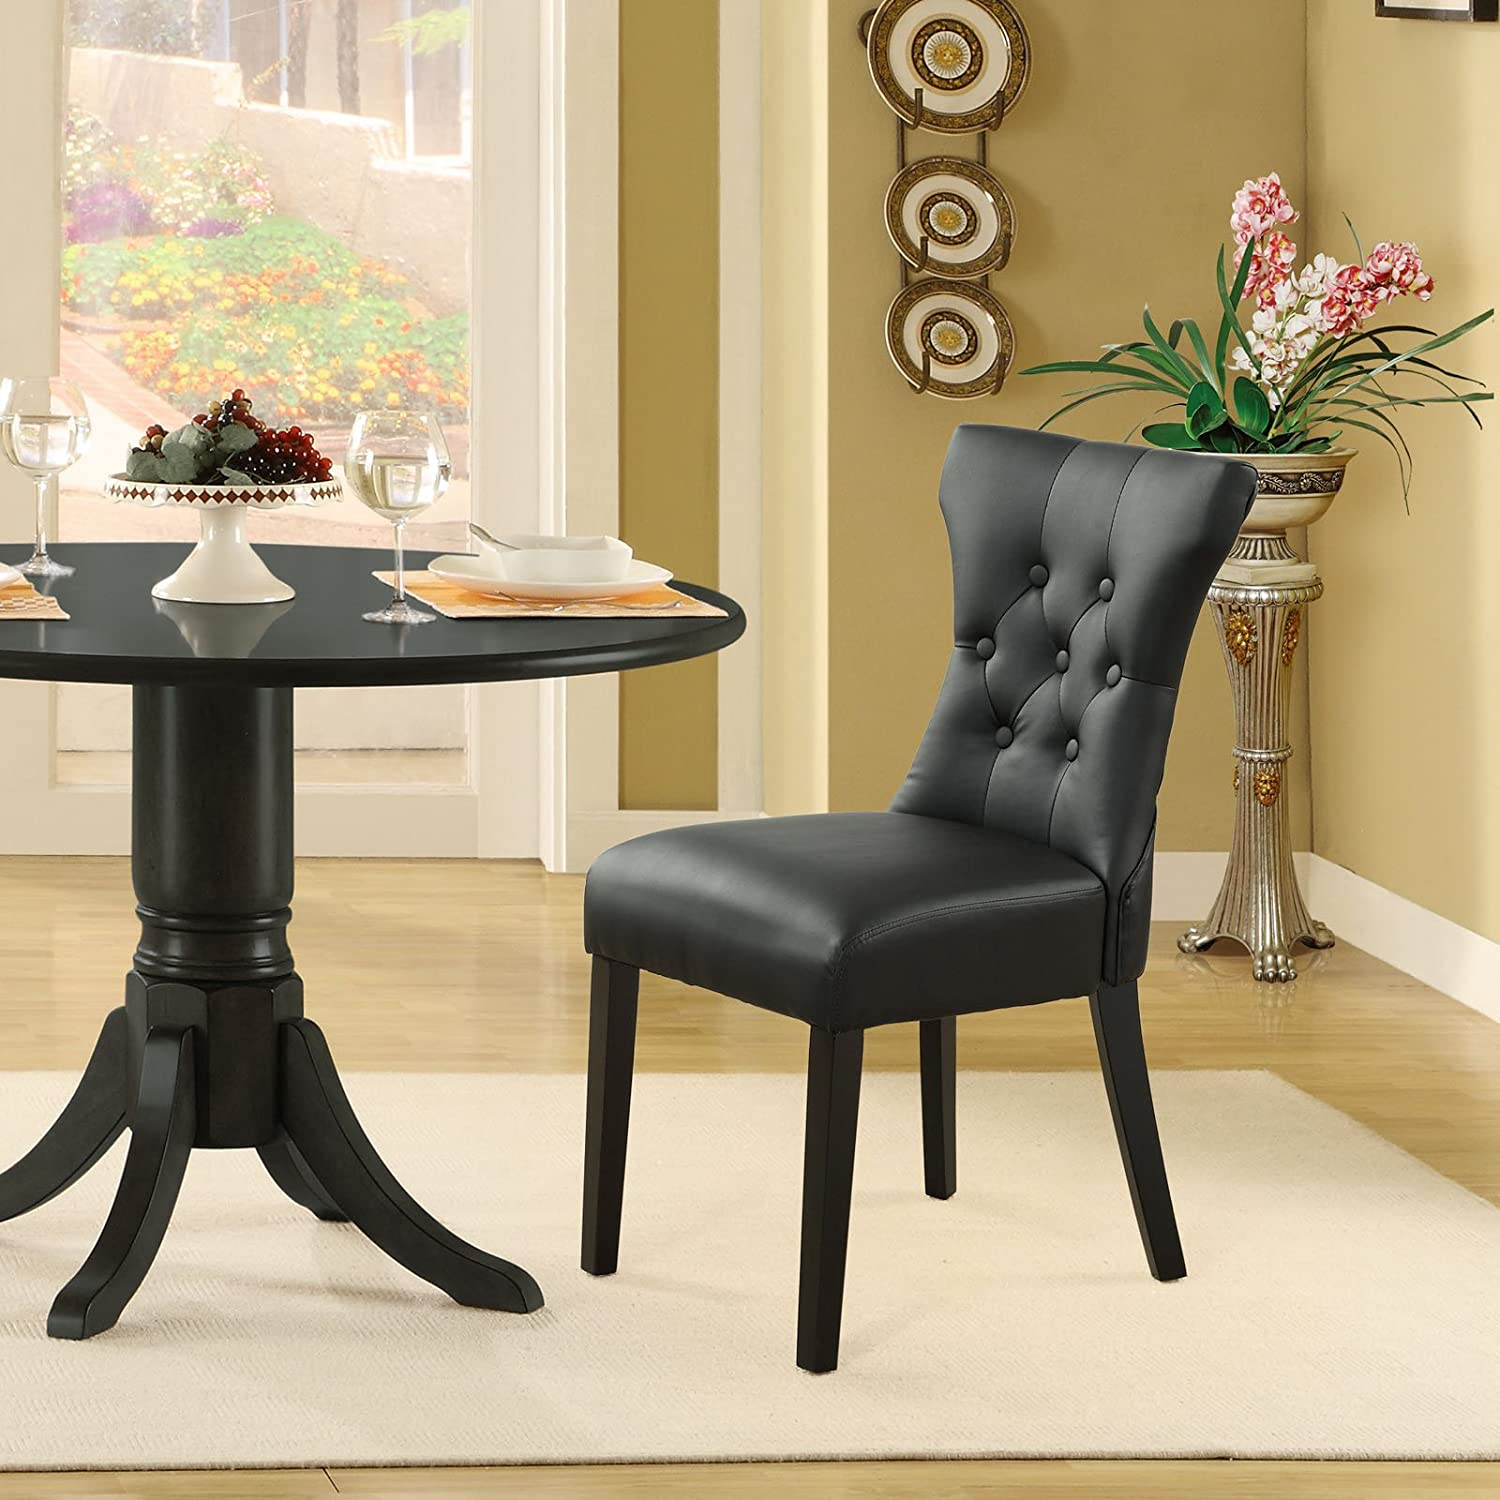 Modway Silhouette Tufted Faux Leather Parsons Dining Side Chair in Black - Set of 2